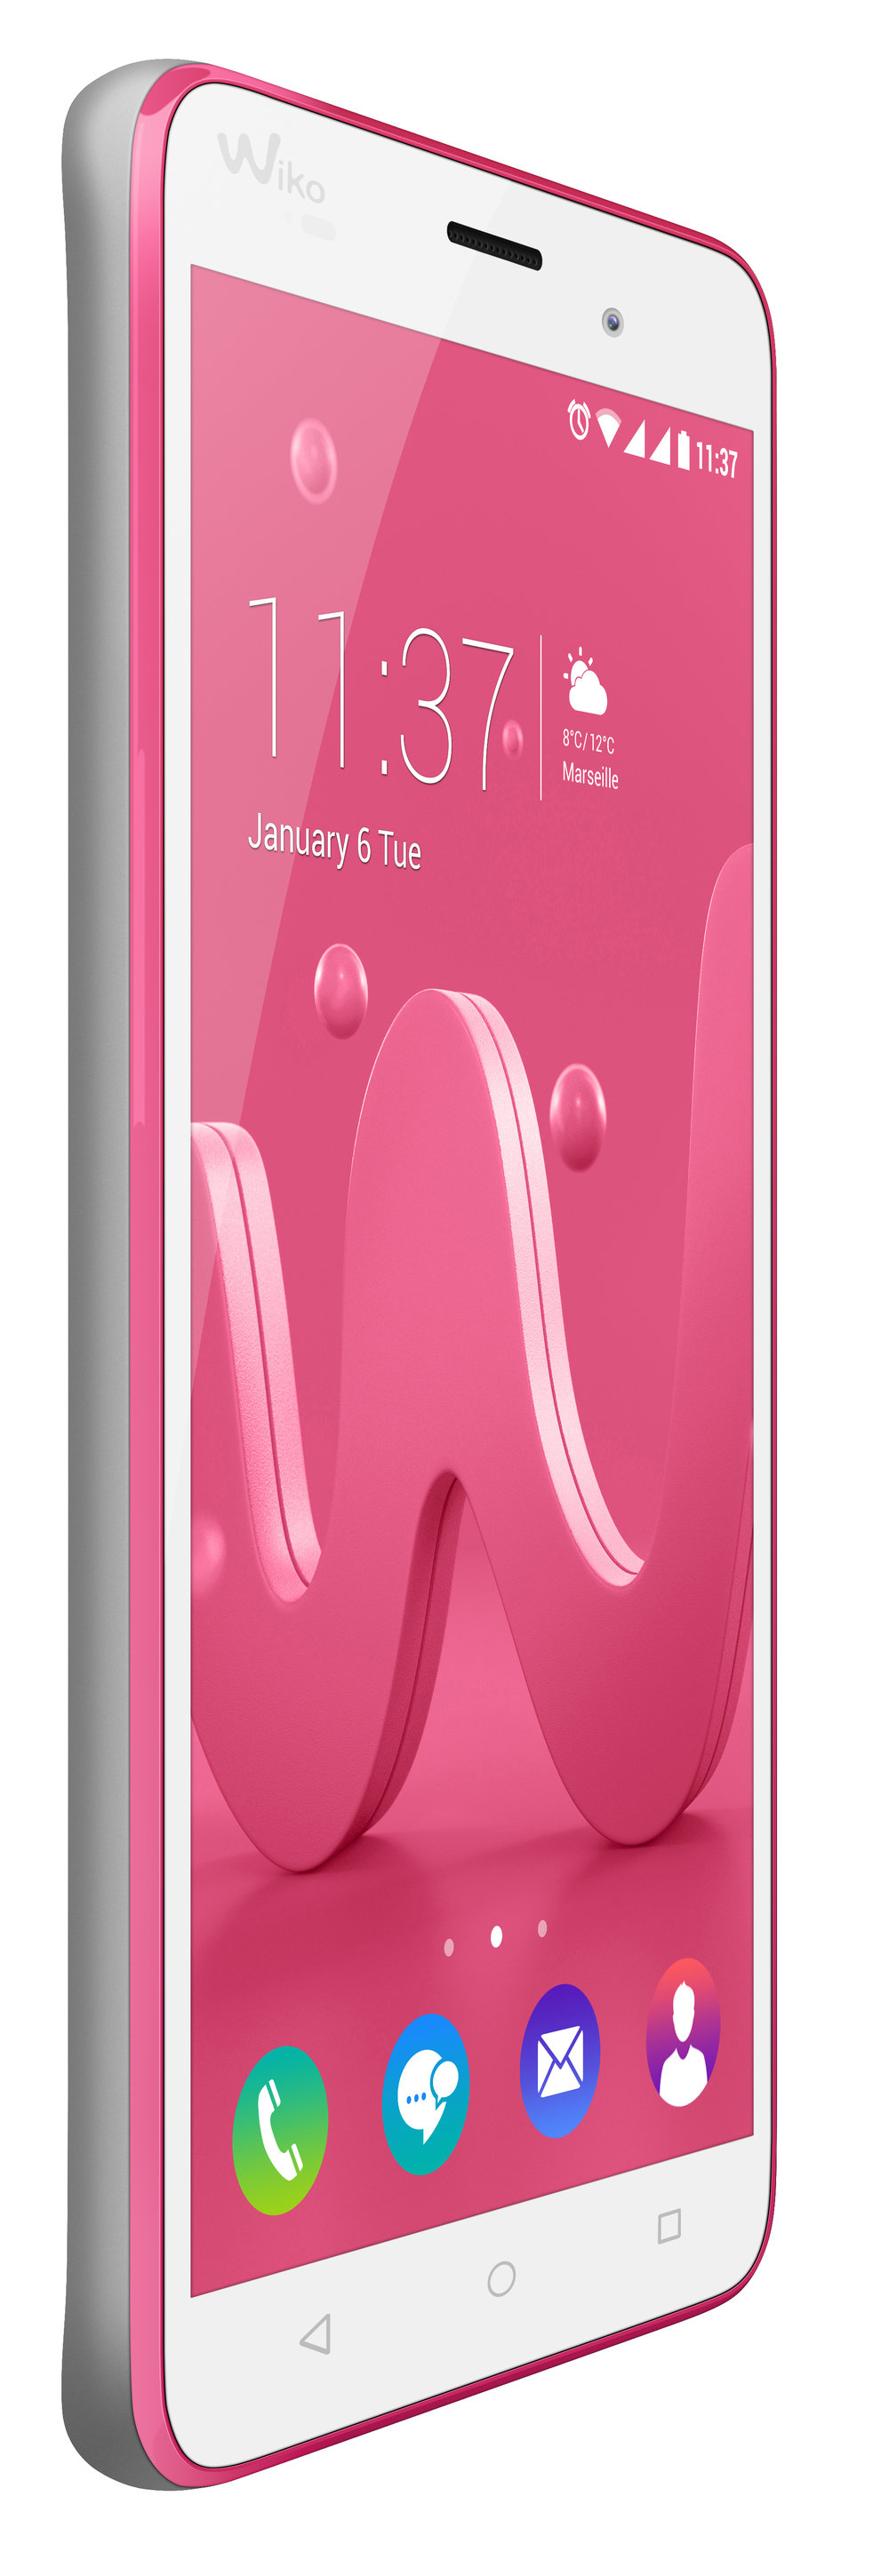 Wiko_JERRY_pink-silver_3quart-front-2.jpg